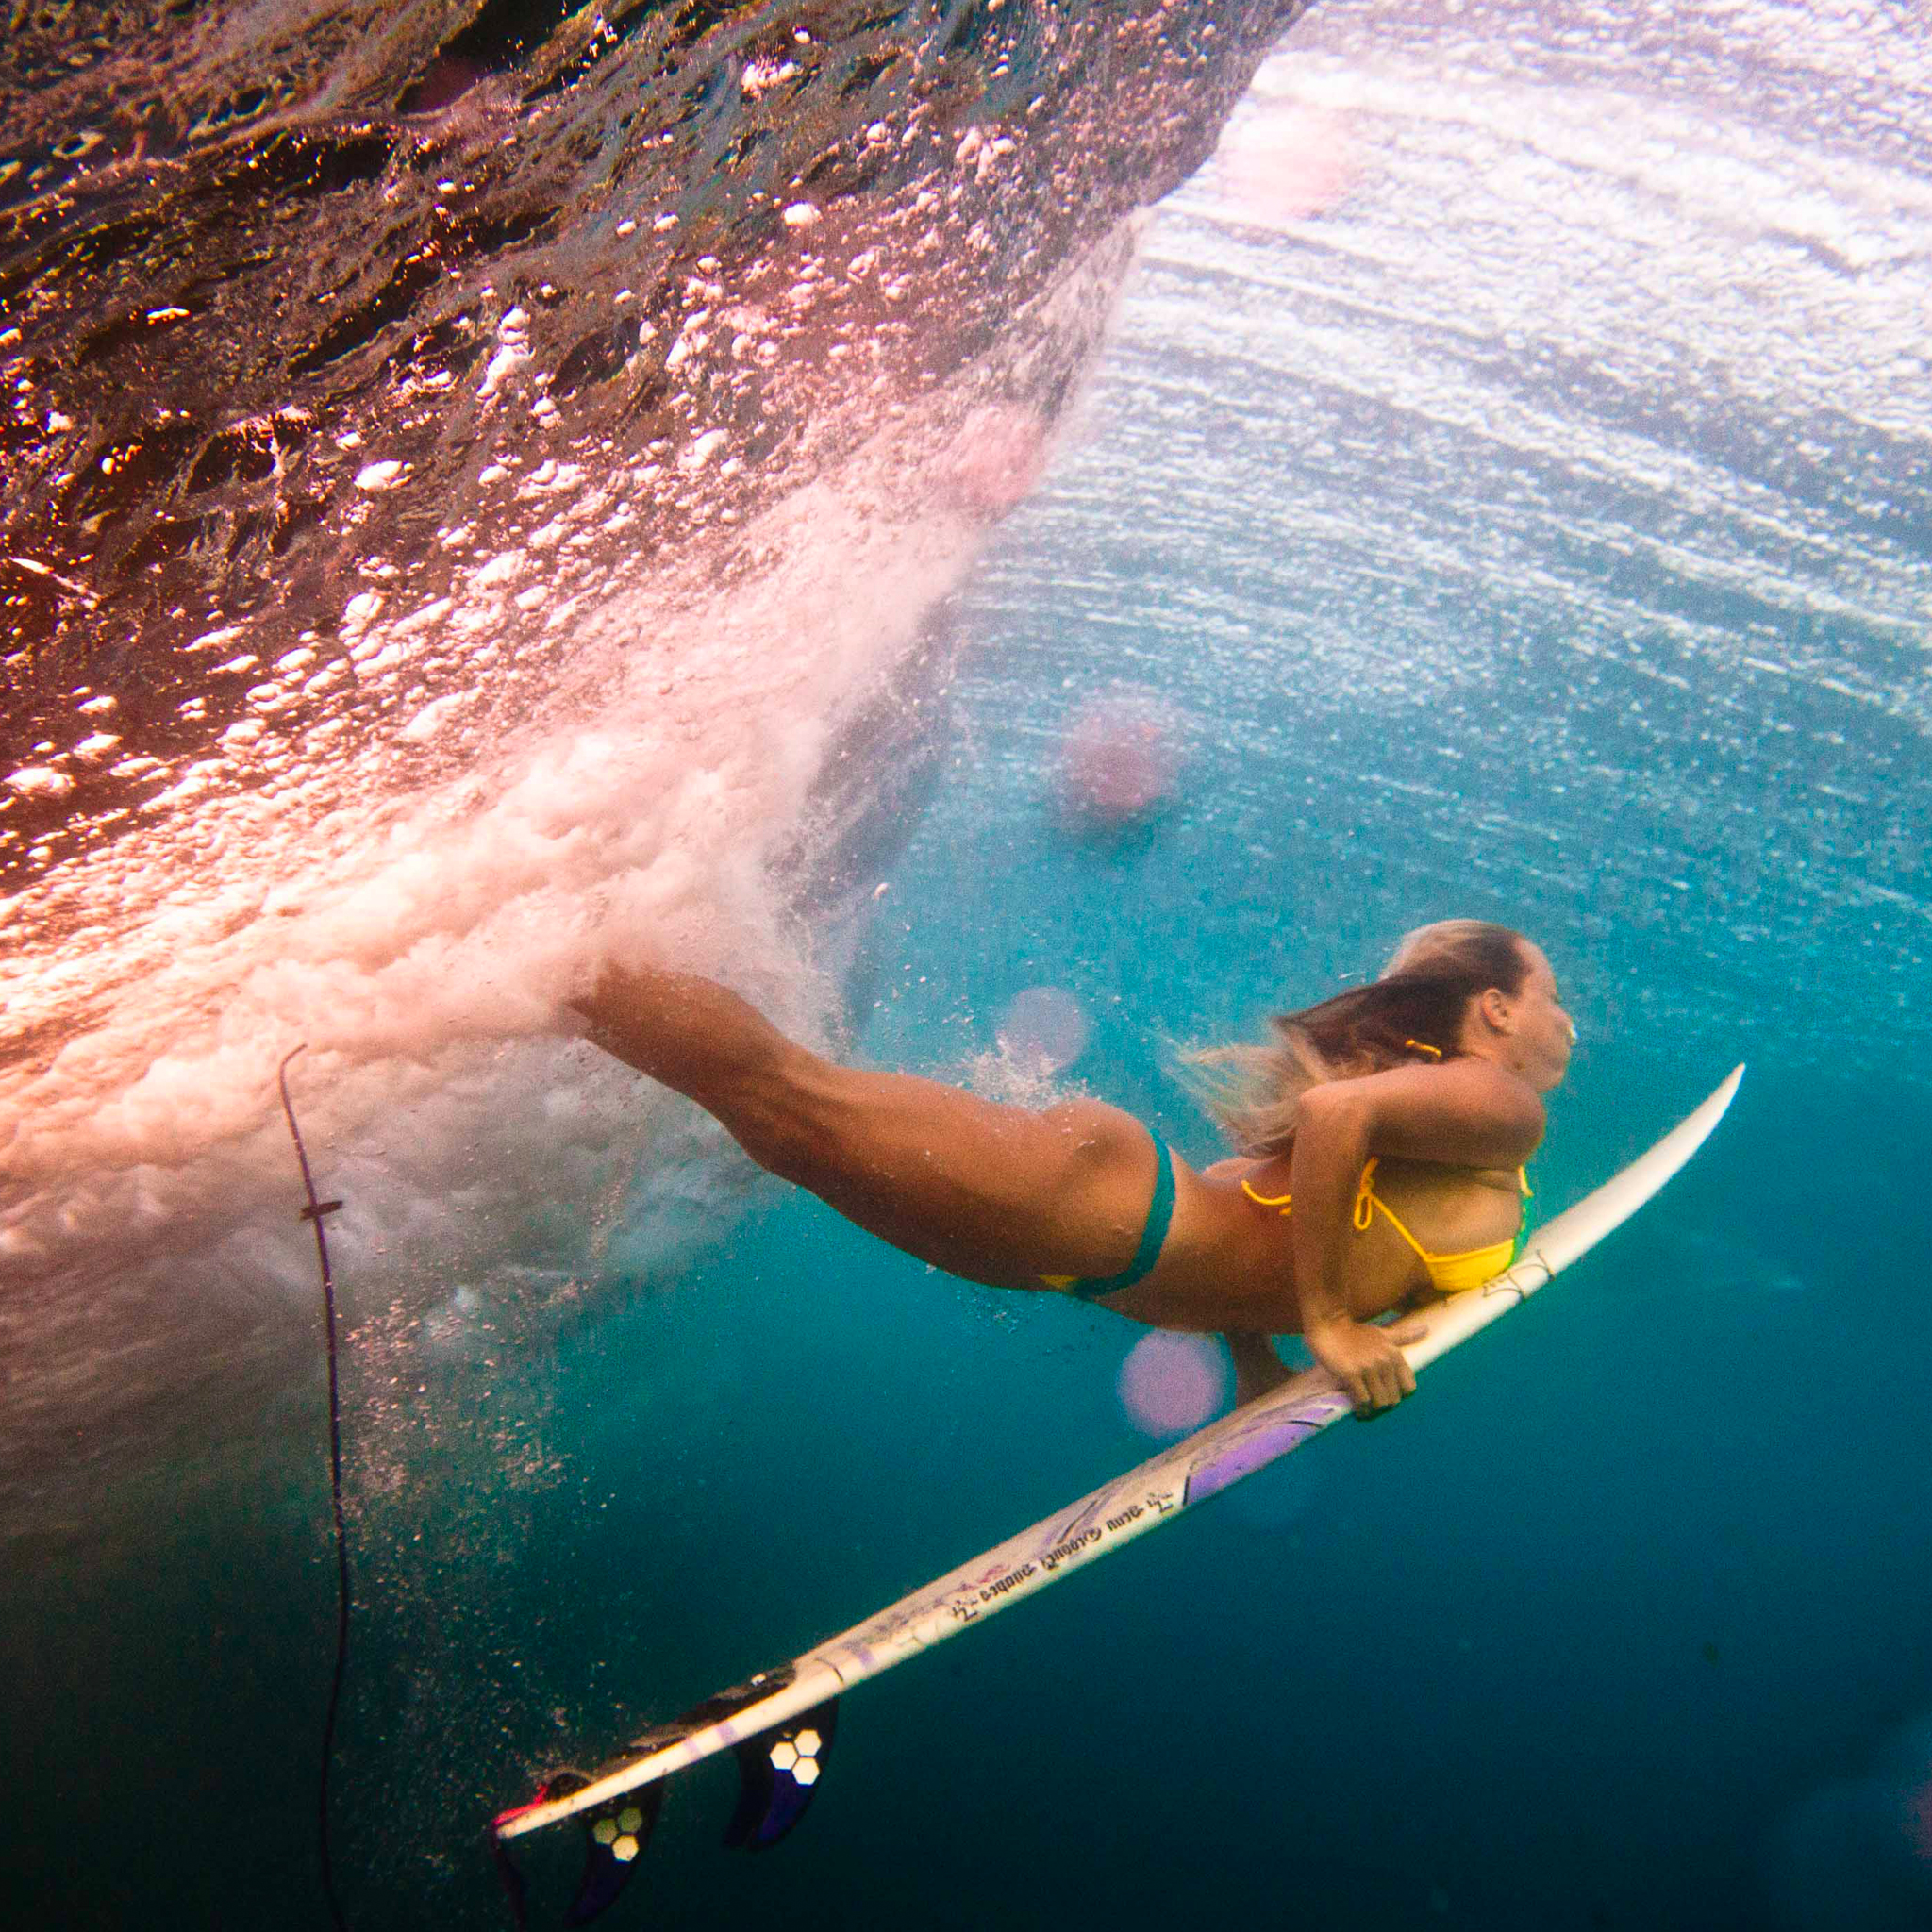 Women_Duck_Surfing_3_Wallpapers_iPad